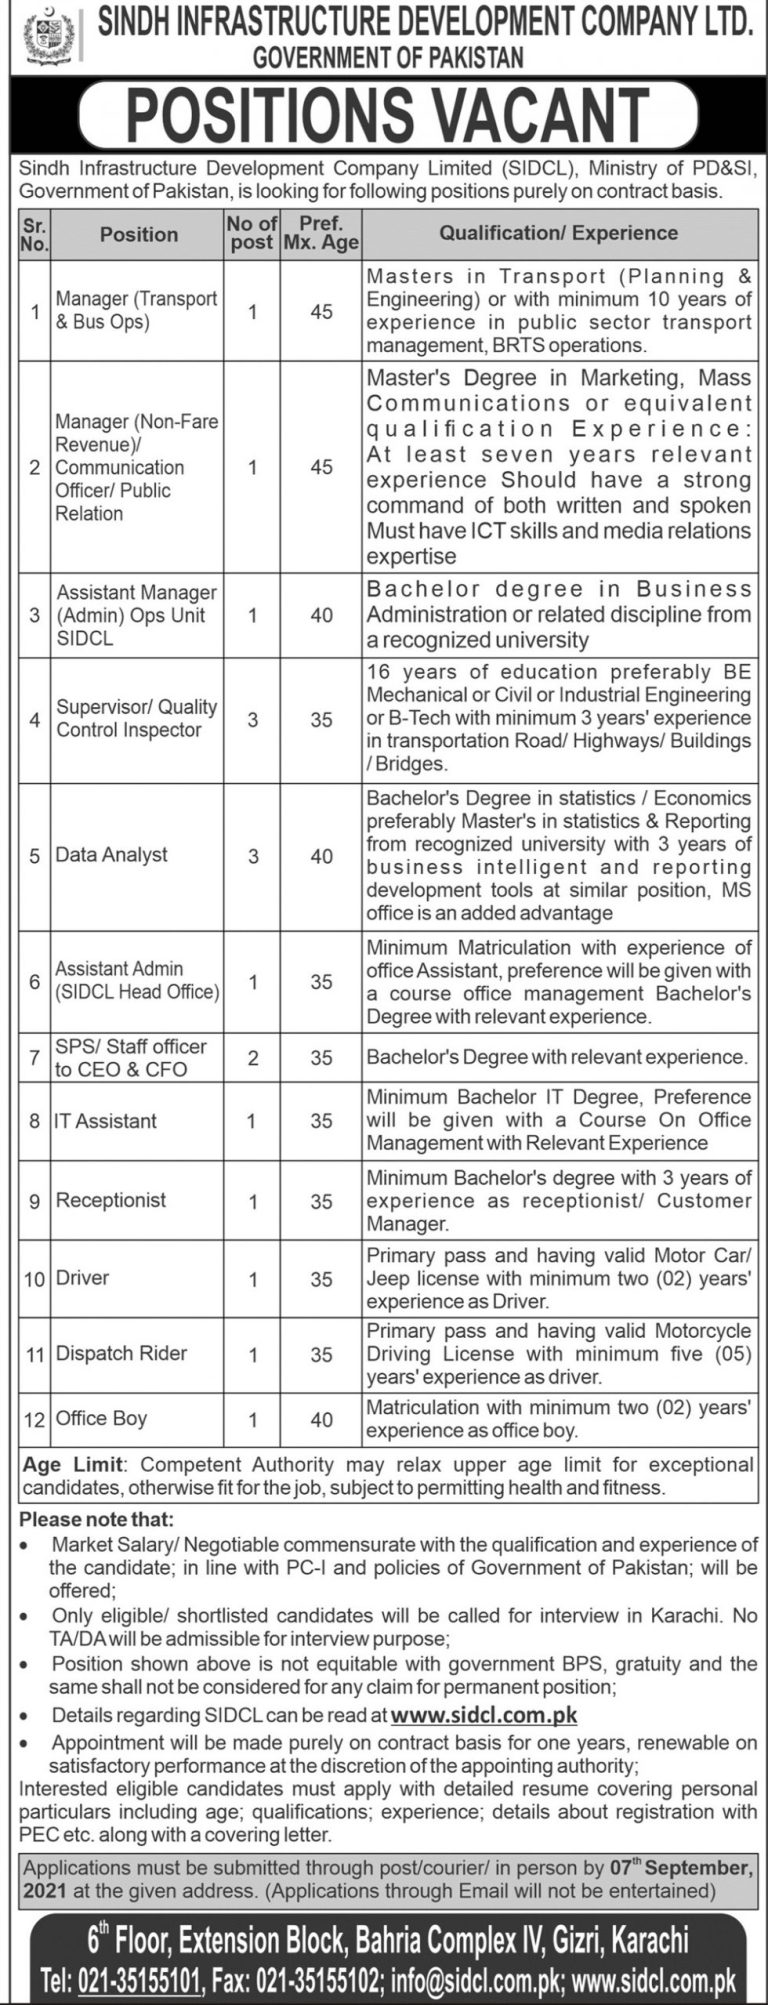 Sindh Infrastructure Development Company Limited SIDCL Jobs 2021  website www.sidcl.com.pk